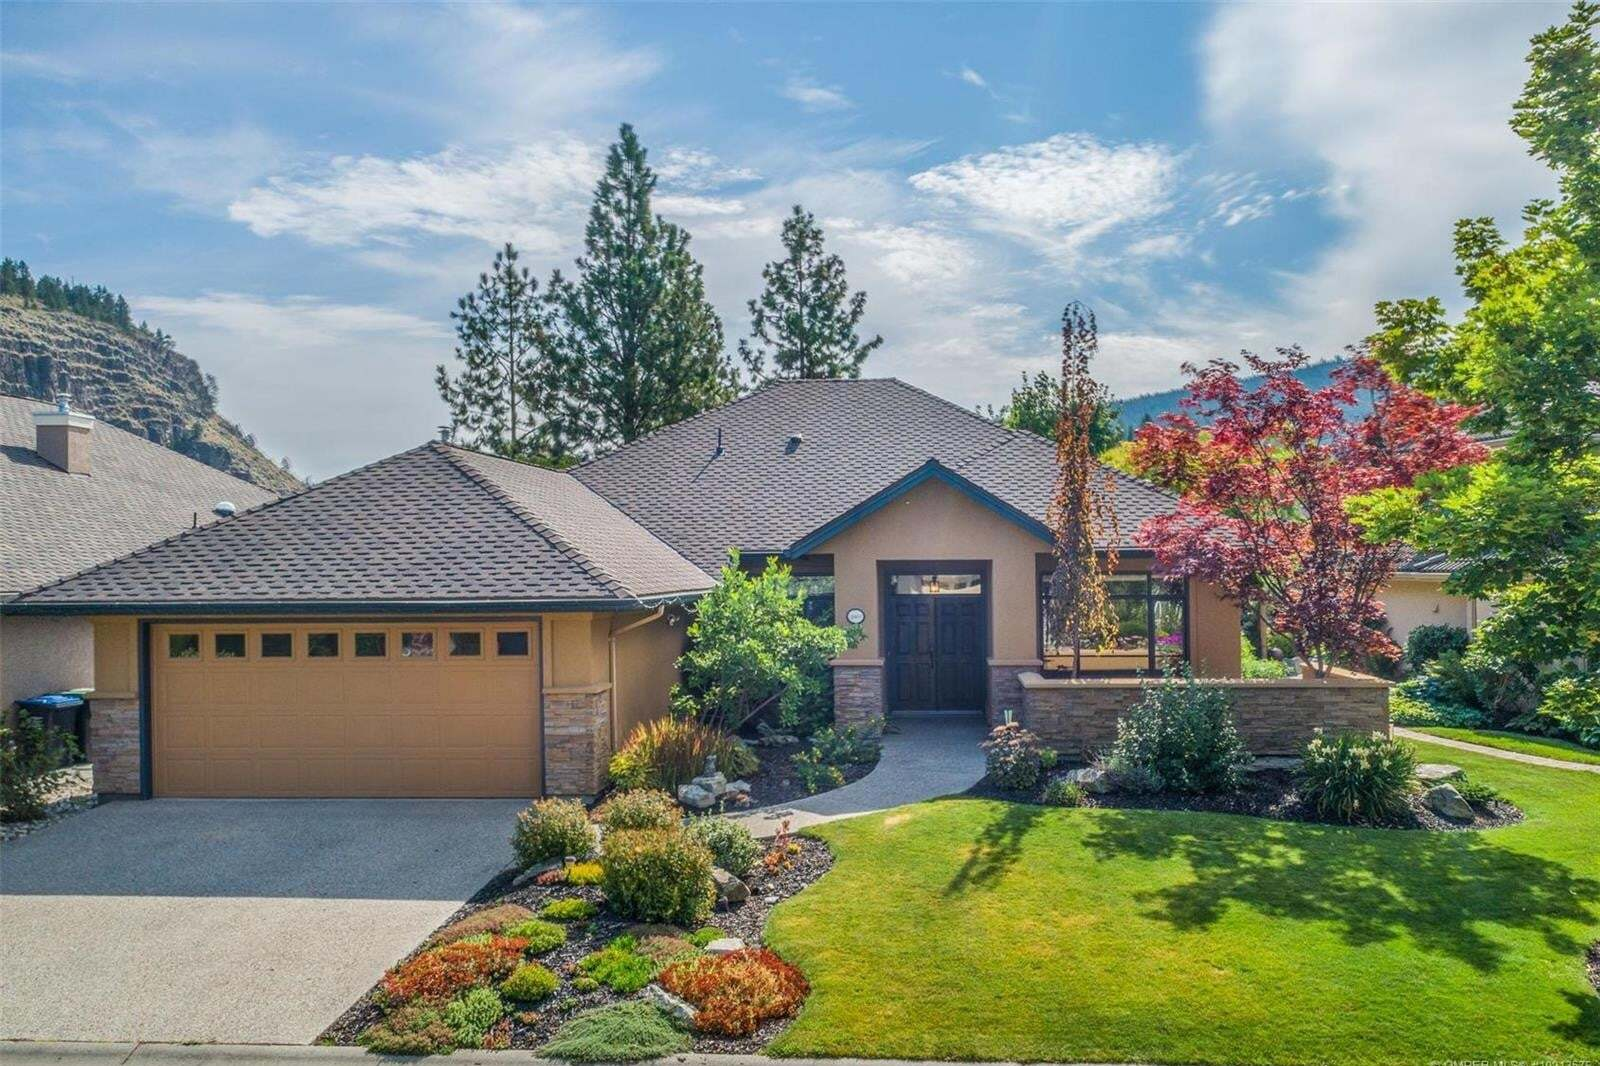 House for sale at 3869 Gallaghers Pw Kelowna British Columbia - MLS: 10213576